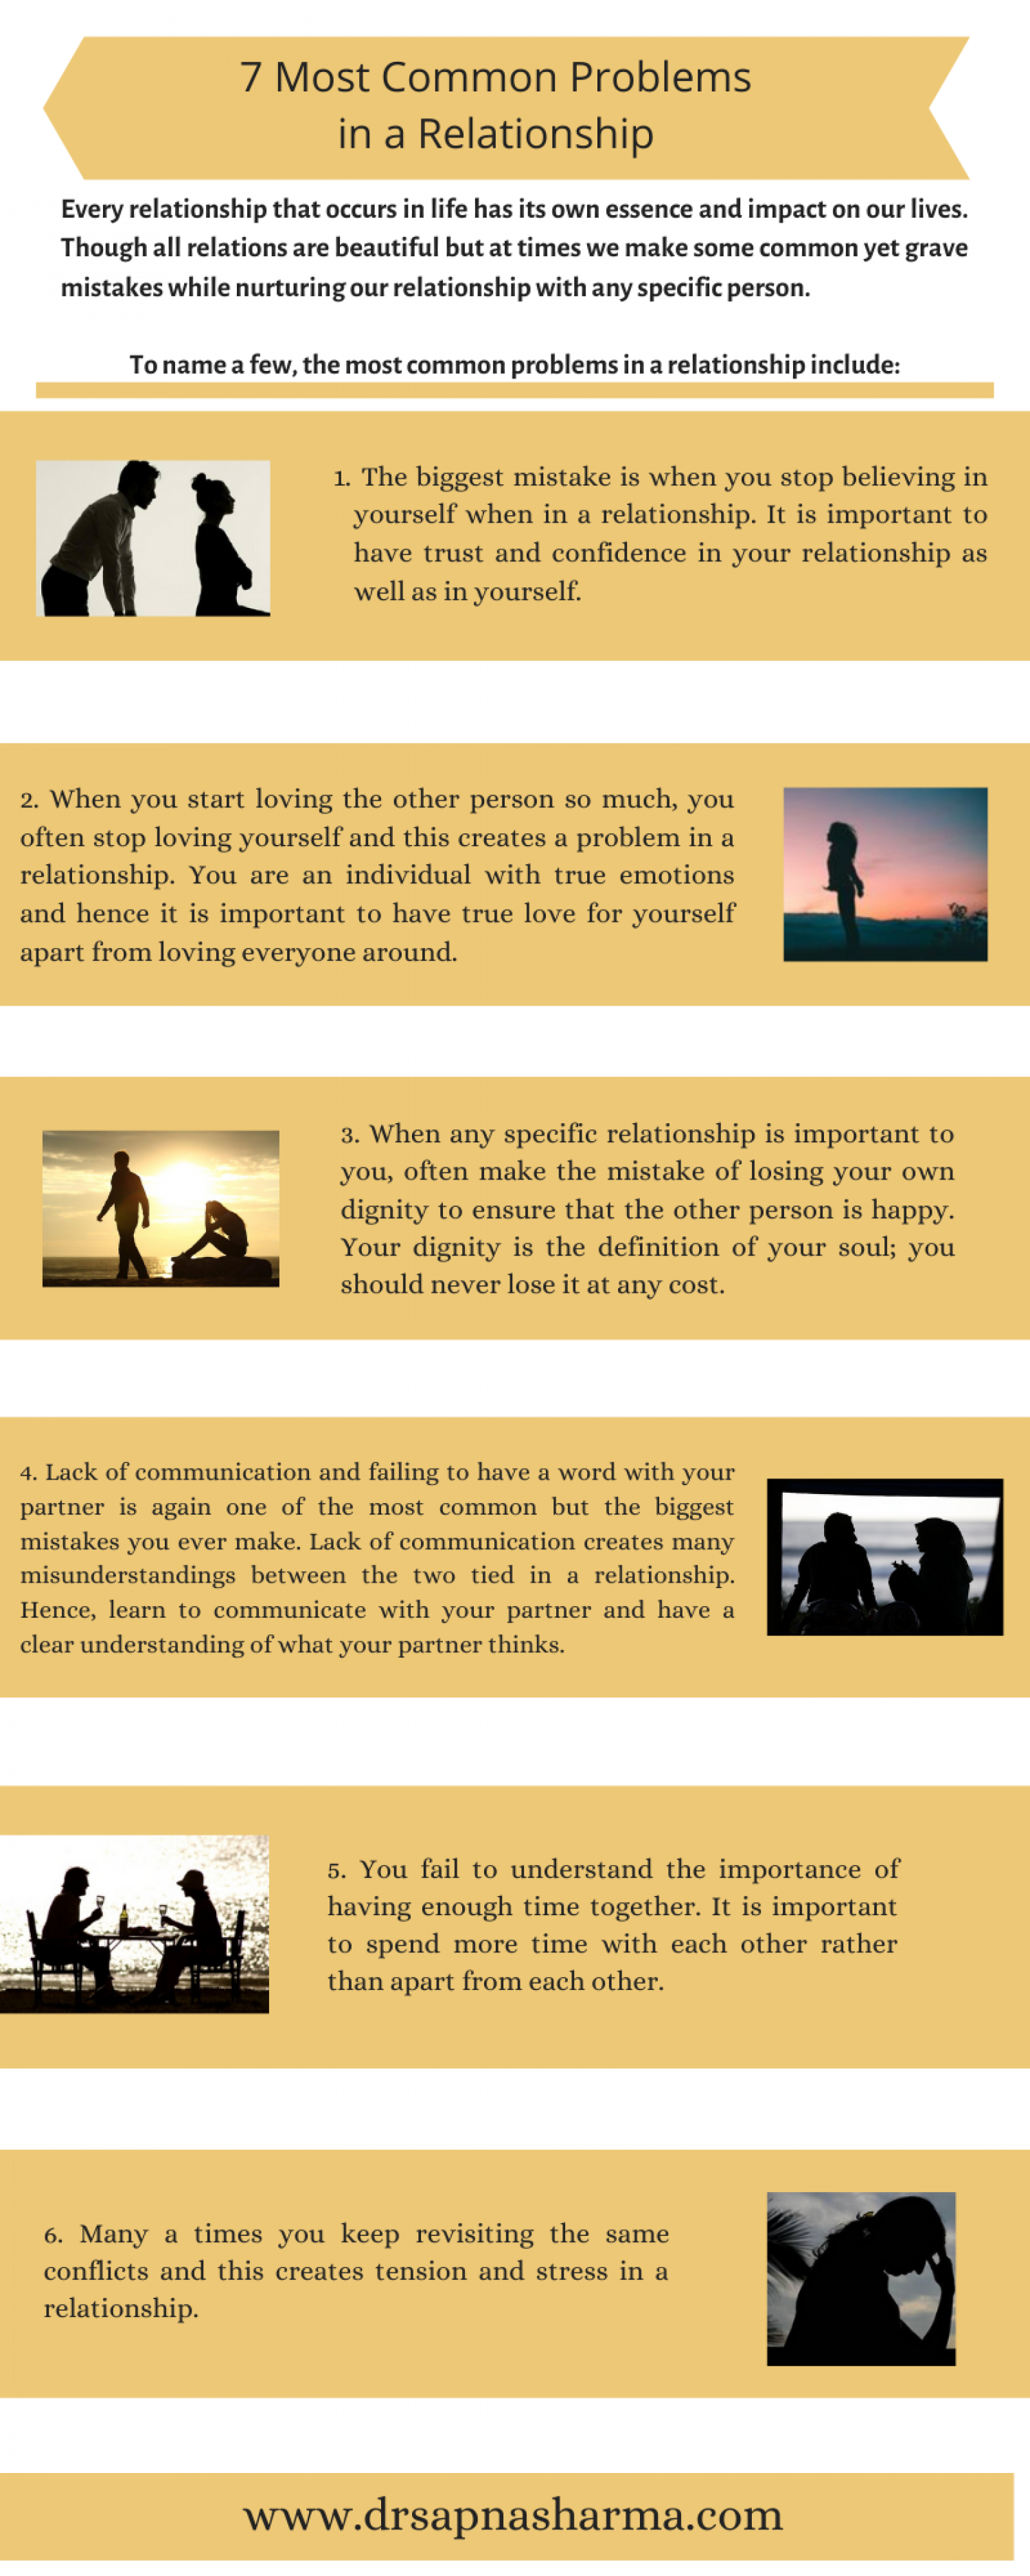 7 Most Common Problems in a Relationship Infographic